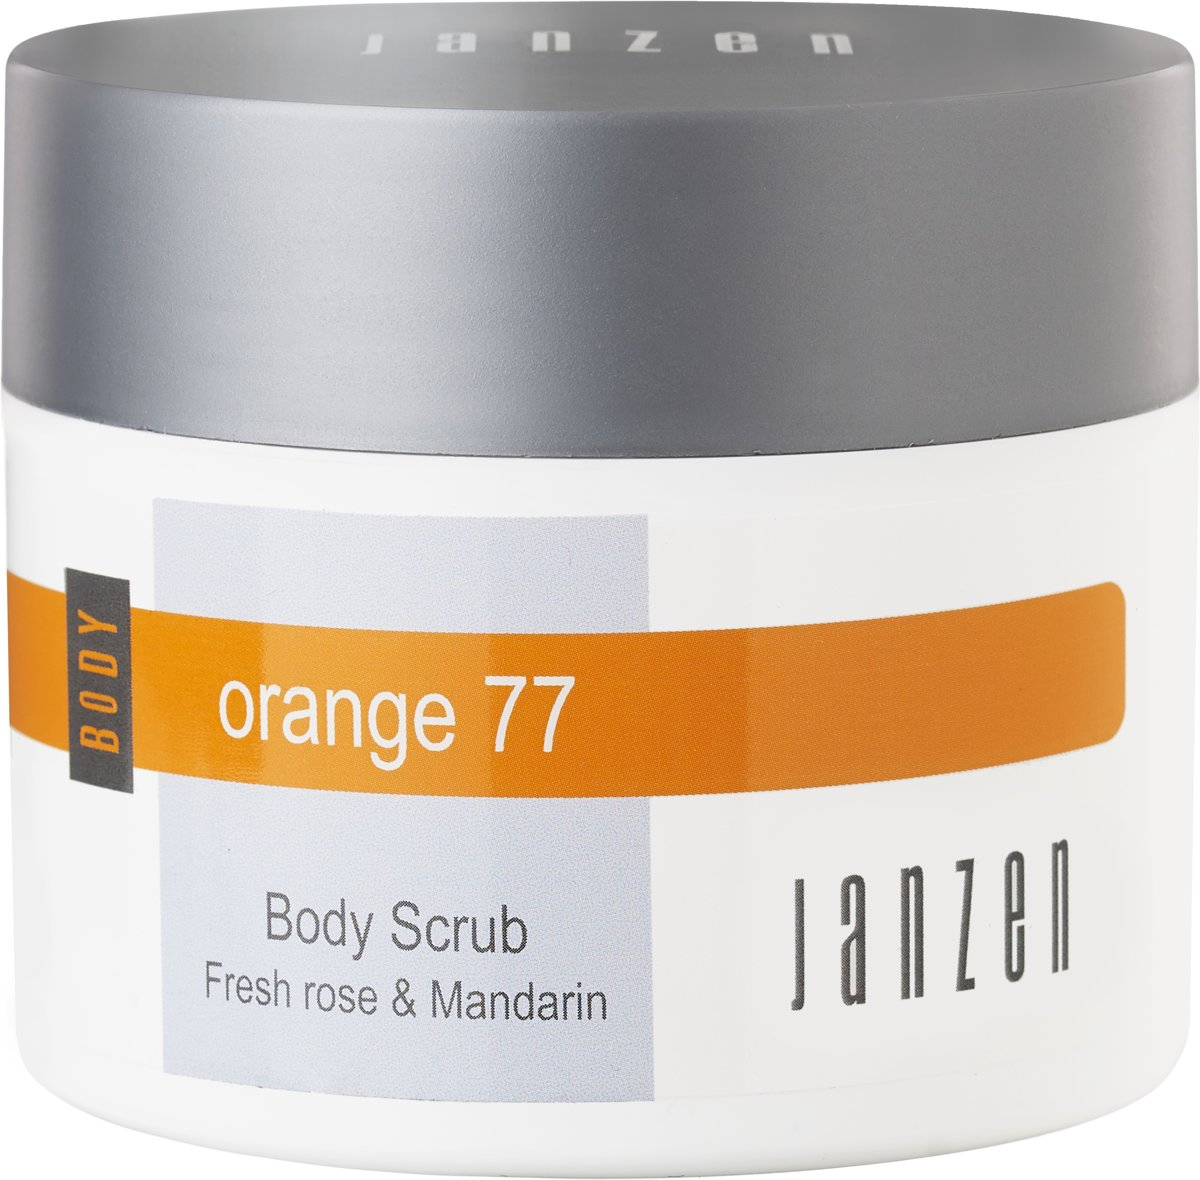 JANZEN Body Scrub Orange 77 - 200 ml